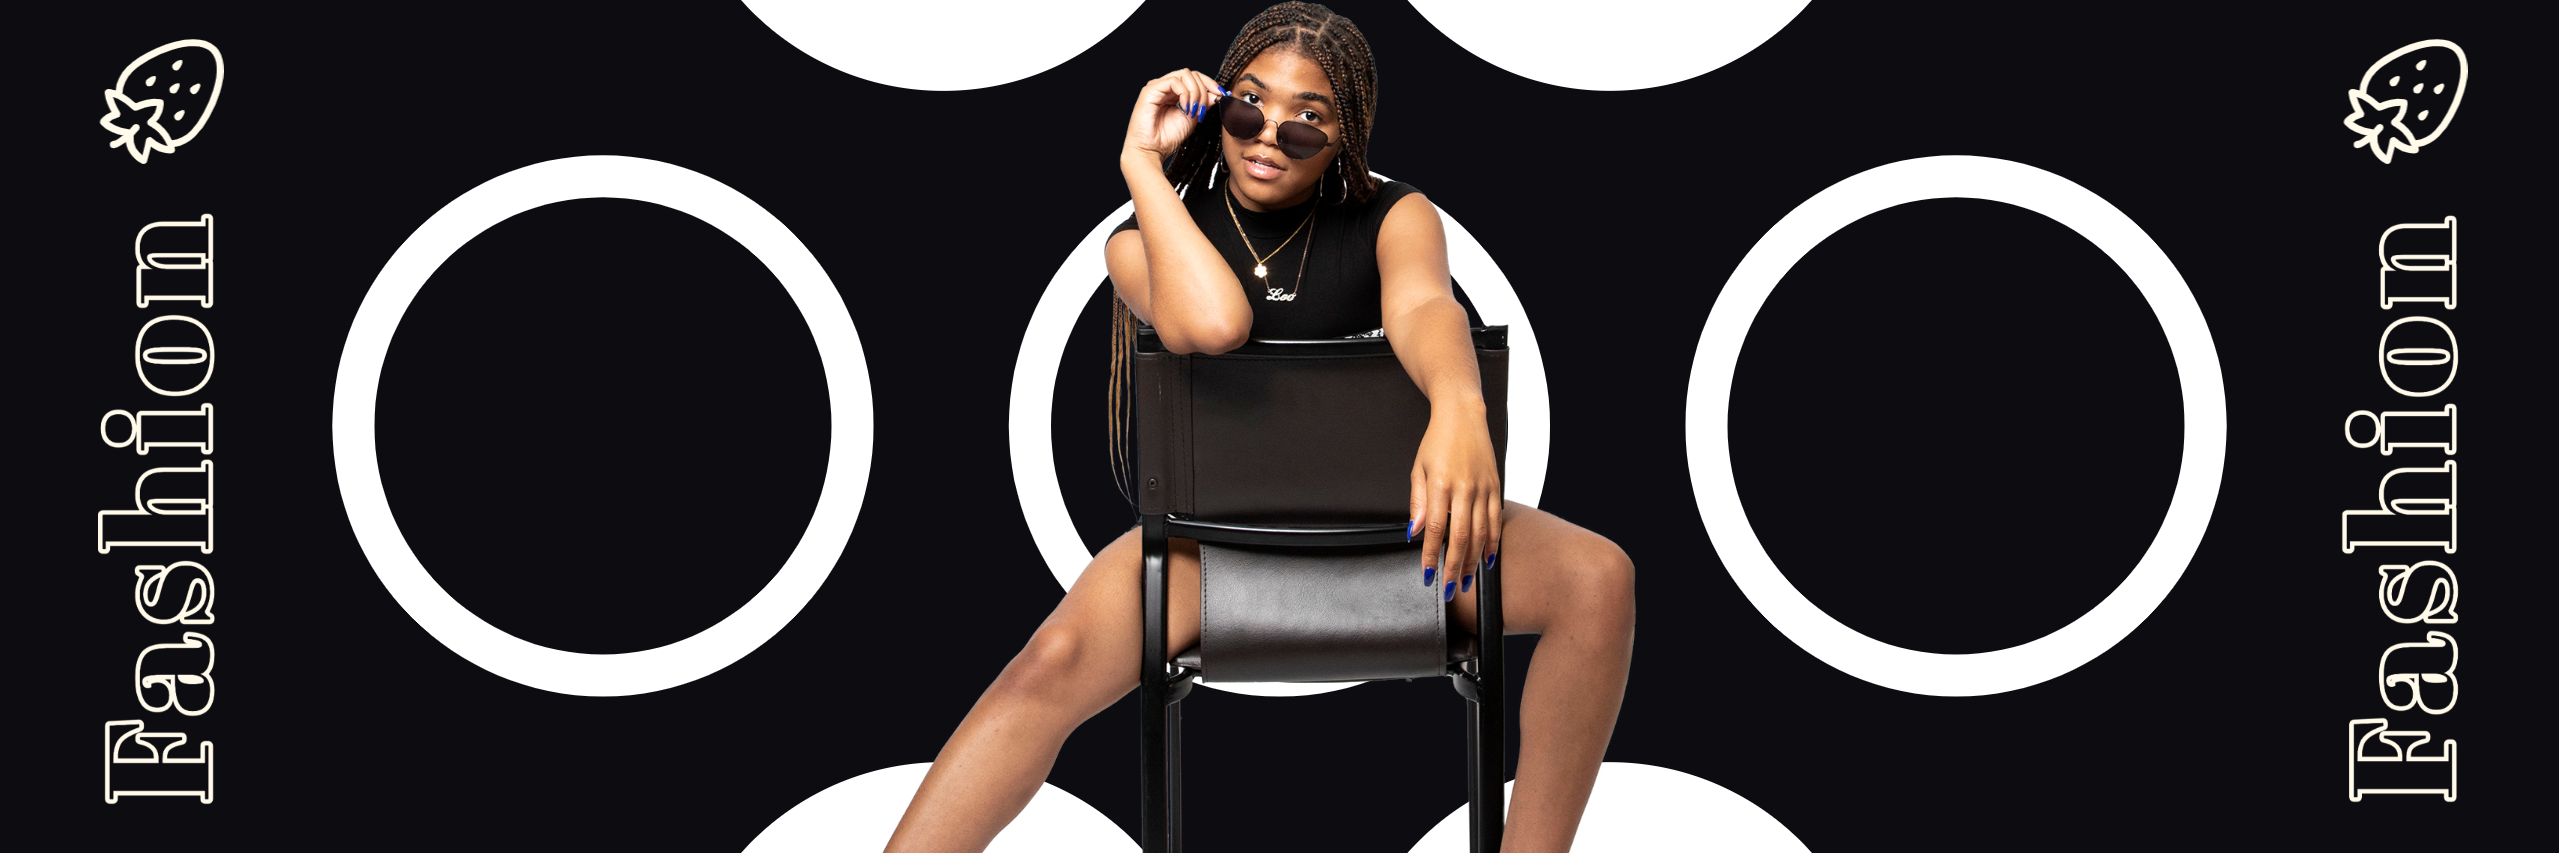 Fashion Cover Graphic with white text, black background, and model in the center